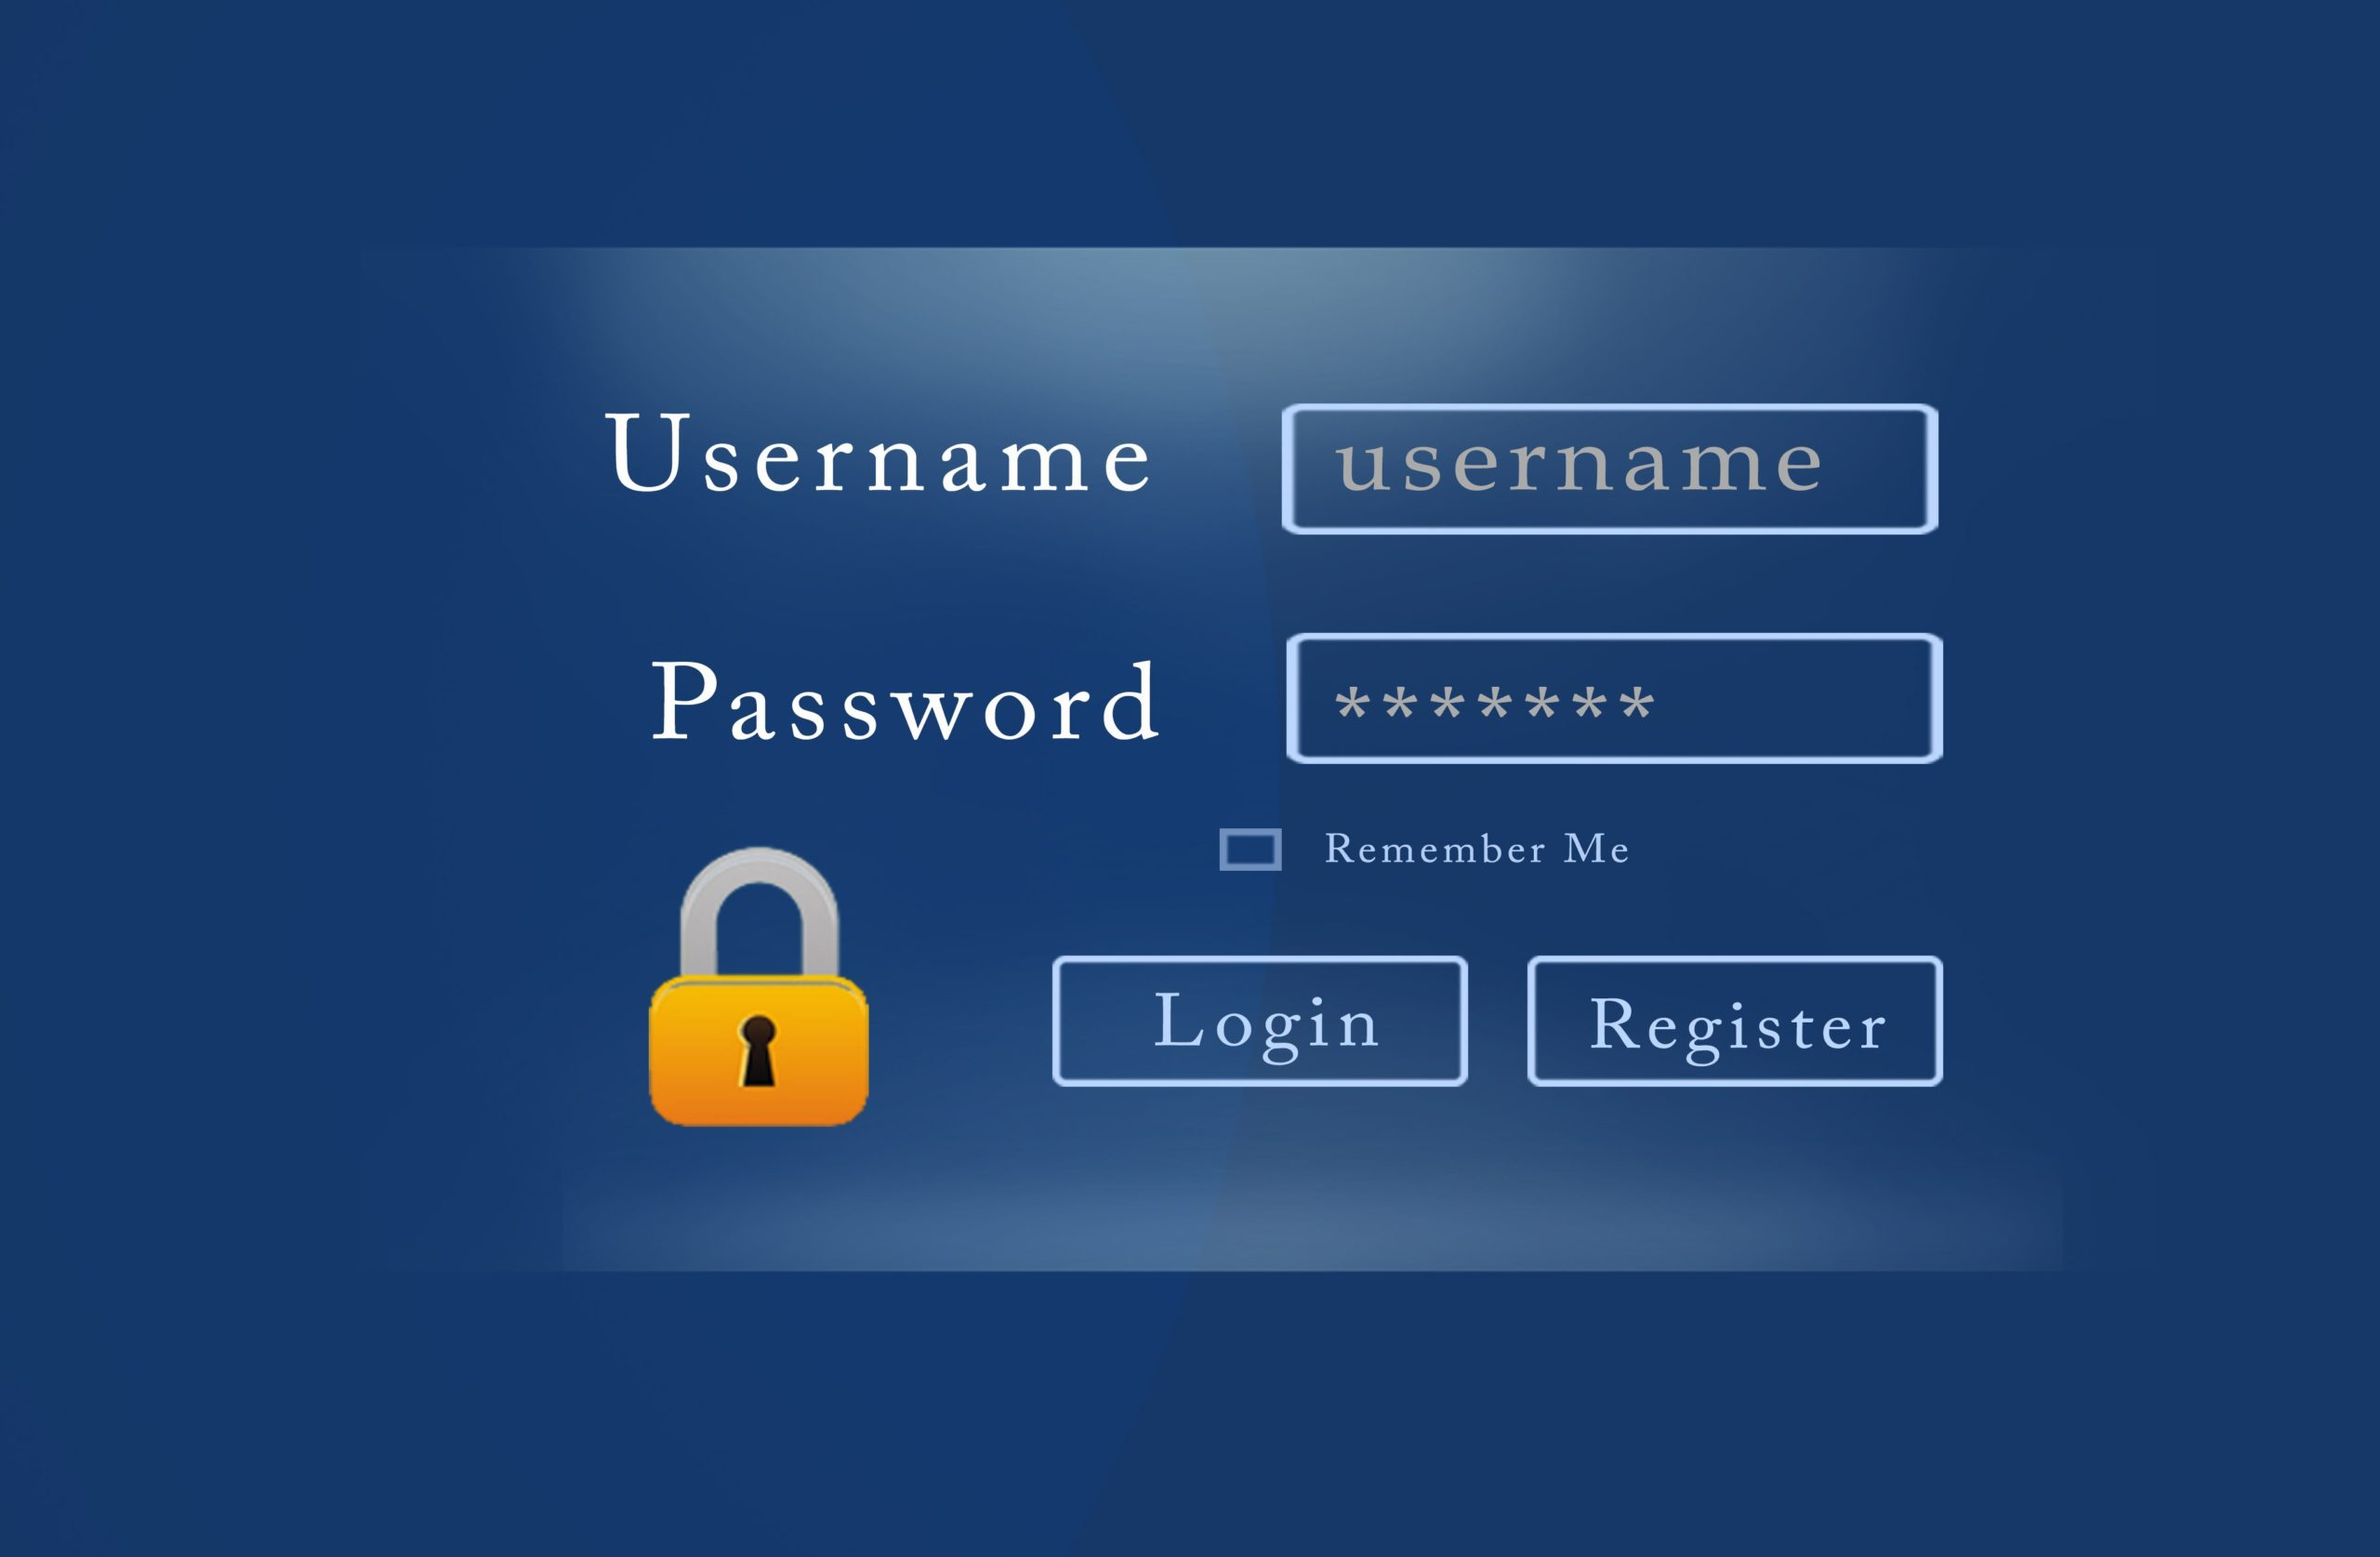 Tips for keeping your password safe and secure